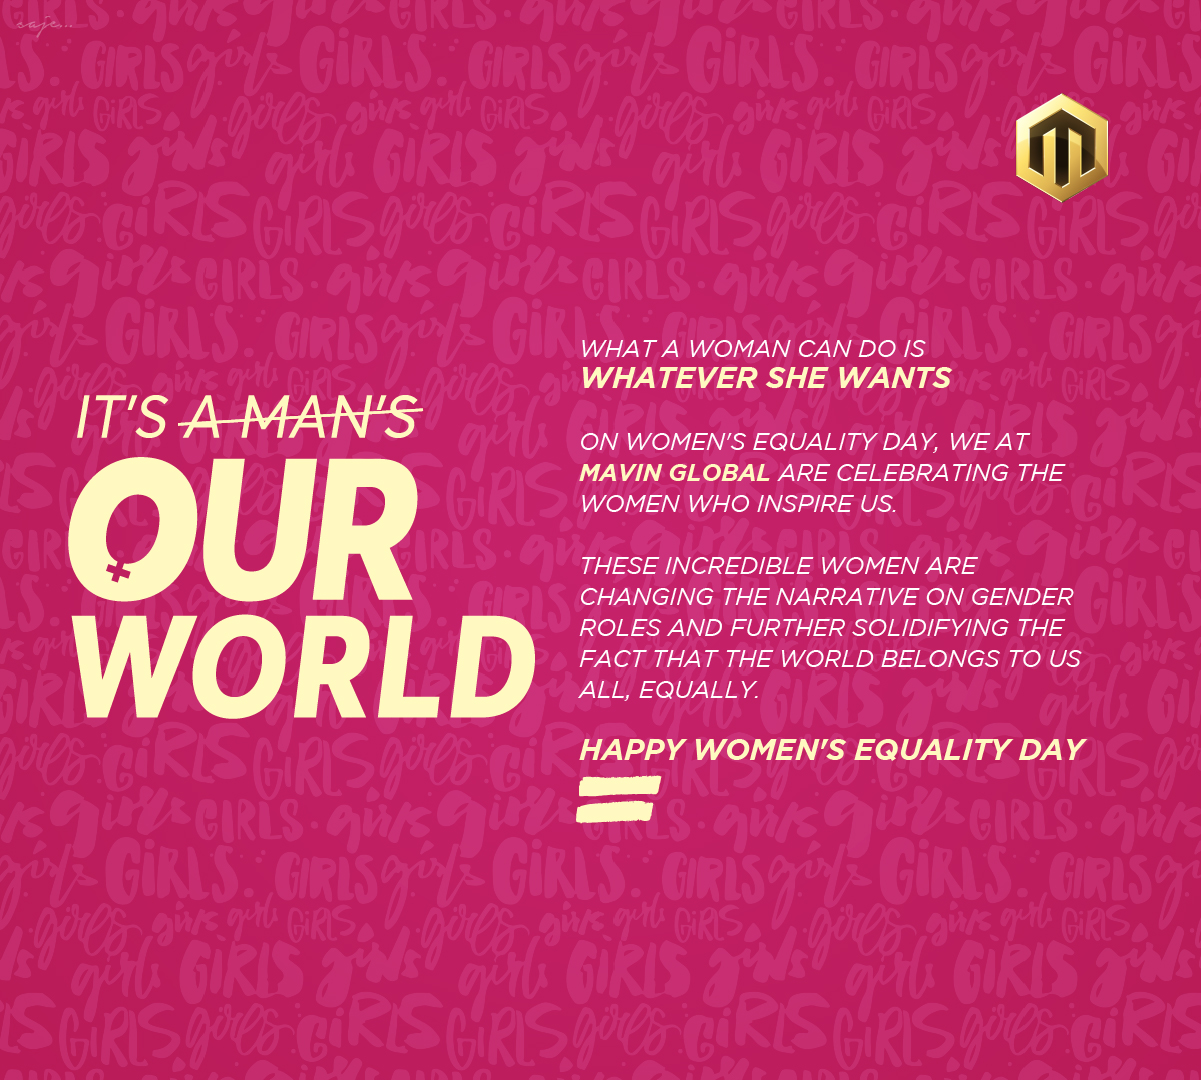 Mavin Global Create 'It's Our World' Campaign to Commemorate Women's Equality Day